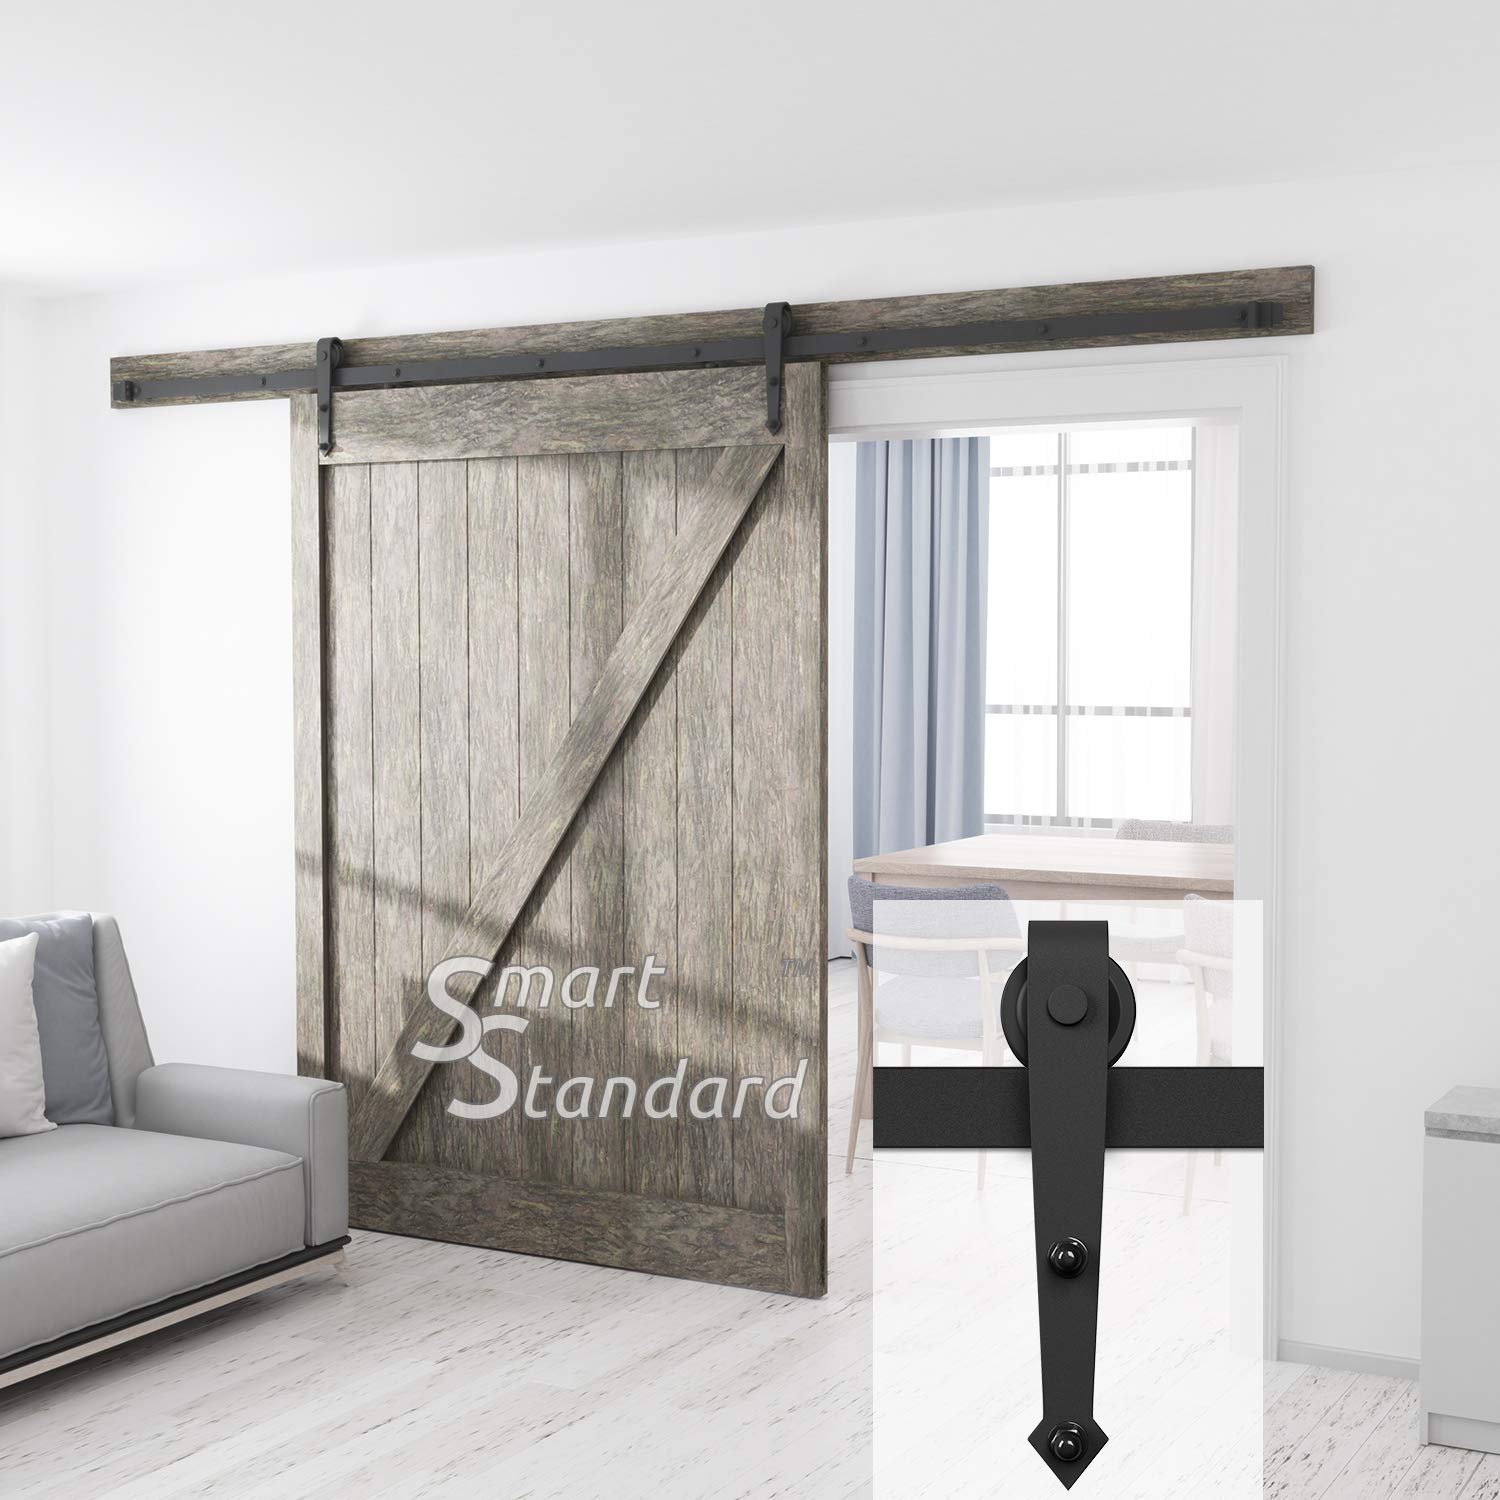 10ft Heavy Duty Sturdy Sliding Barn Door Hardware Kit - Super Smoothly and Quietly - Simple and Easy to Install - Includes Step-by-Step Installation Instruction -Fit 60'' Wide Door (Arrow Shape Hanger)